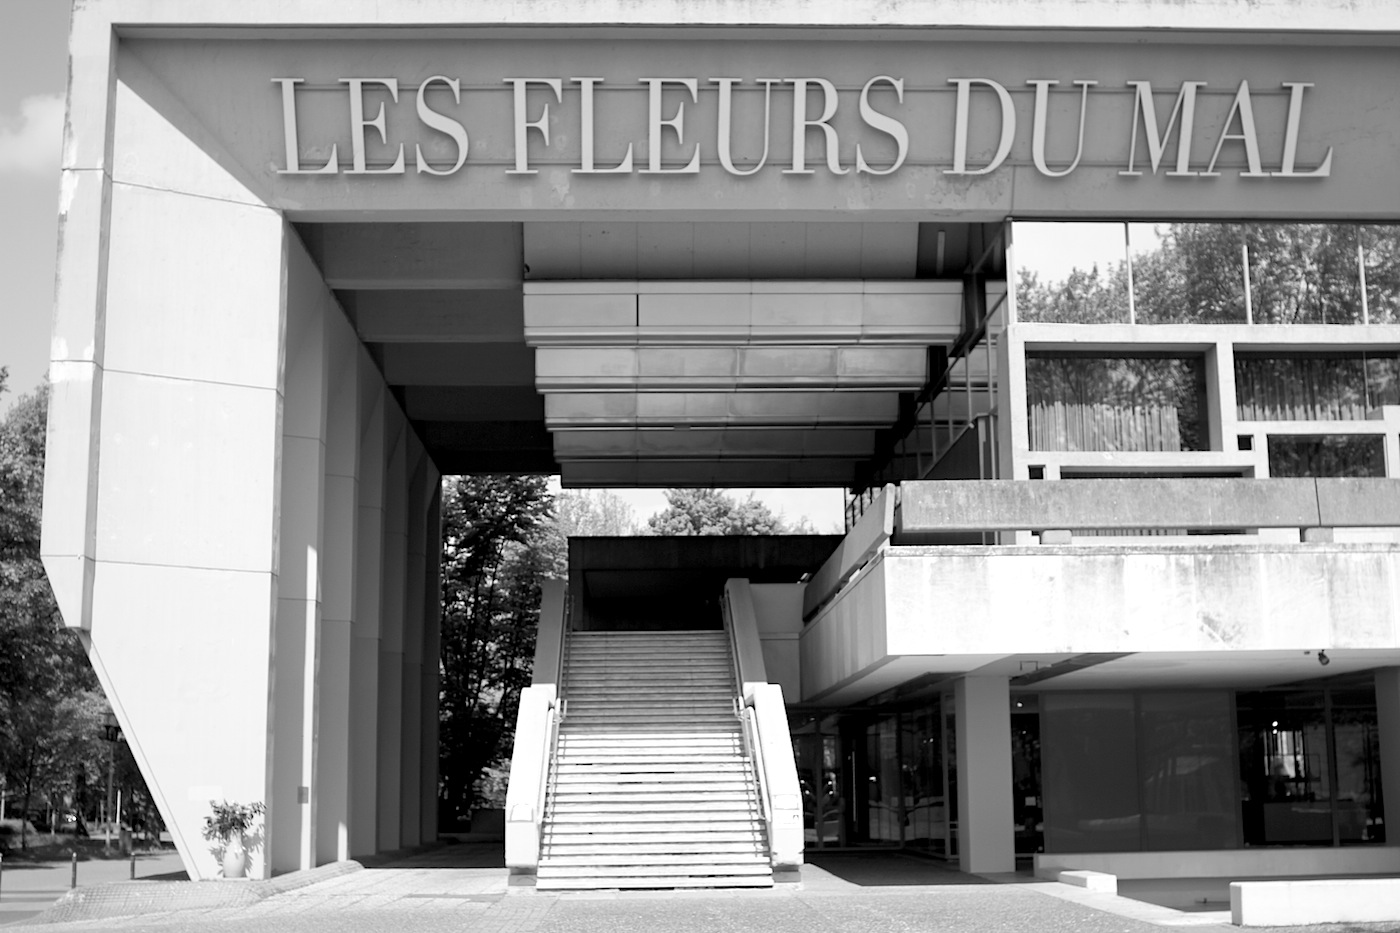 """Les Fleurs Du Mal.  """"The Flowers of Evil"""" is written on the edge of the façade of the town hall, the museum of sculptures, opened in 1982, and the free staircase to the civil registry office – an installation by the light artist, Mischa Kuball, combining the title of the poem cycle by Baudelaire with the word play Flowers for Marl."""